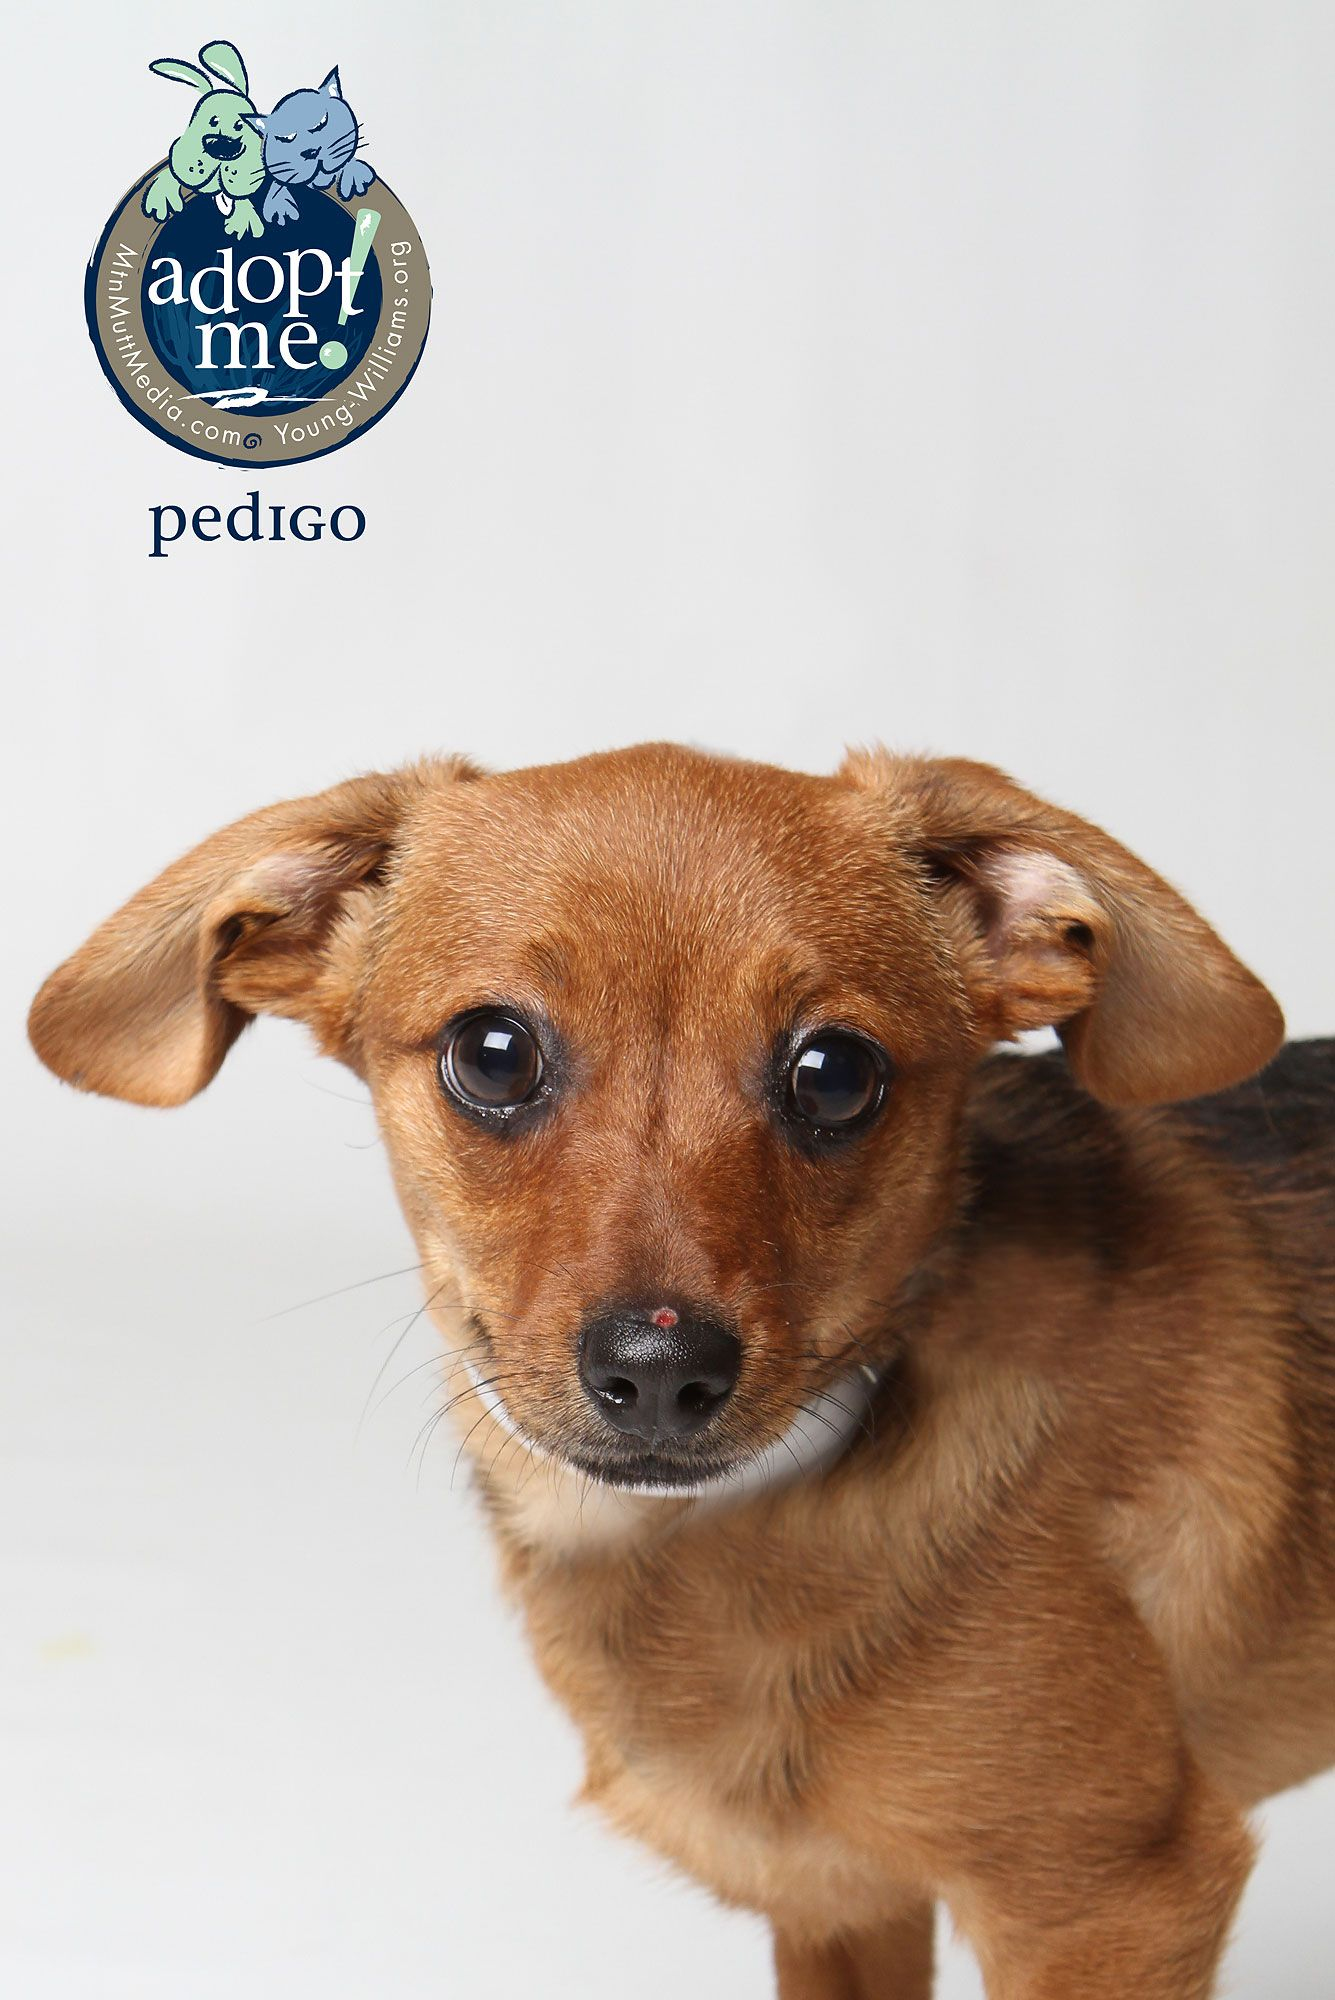 Shelter Dogs, Puppies, Kittens, Cats, Rabbits, Hamsters